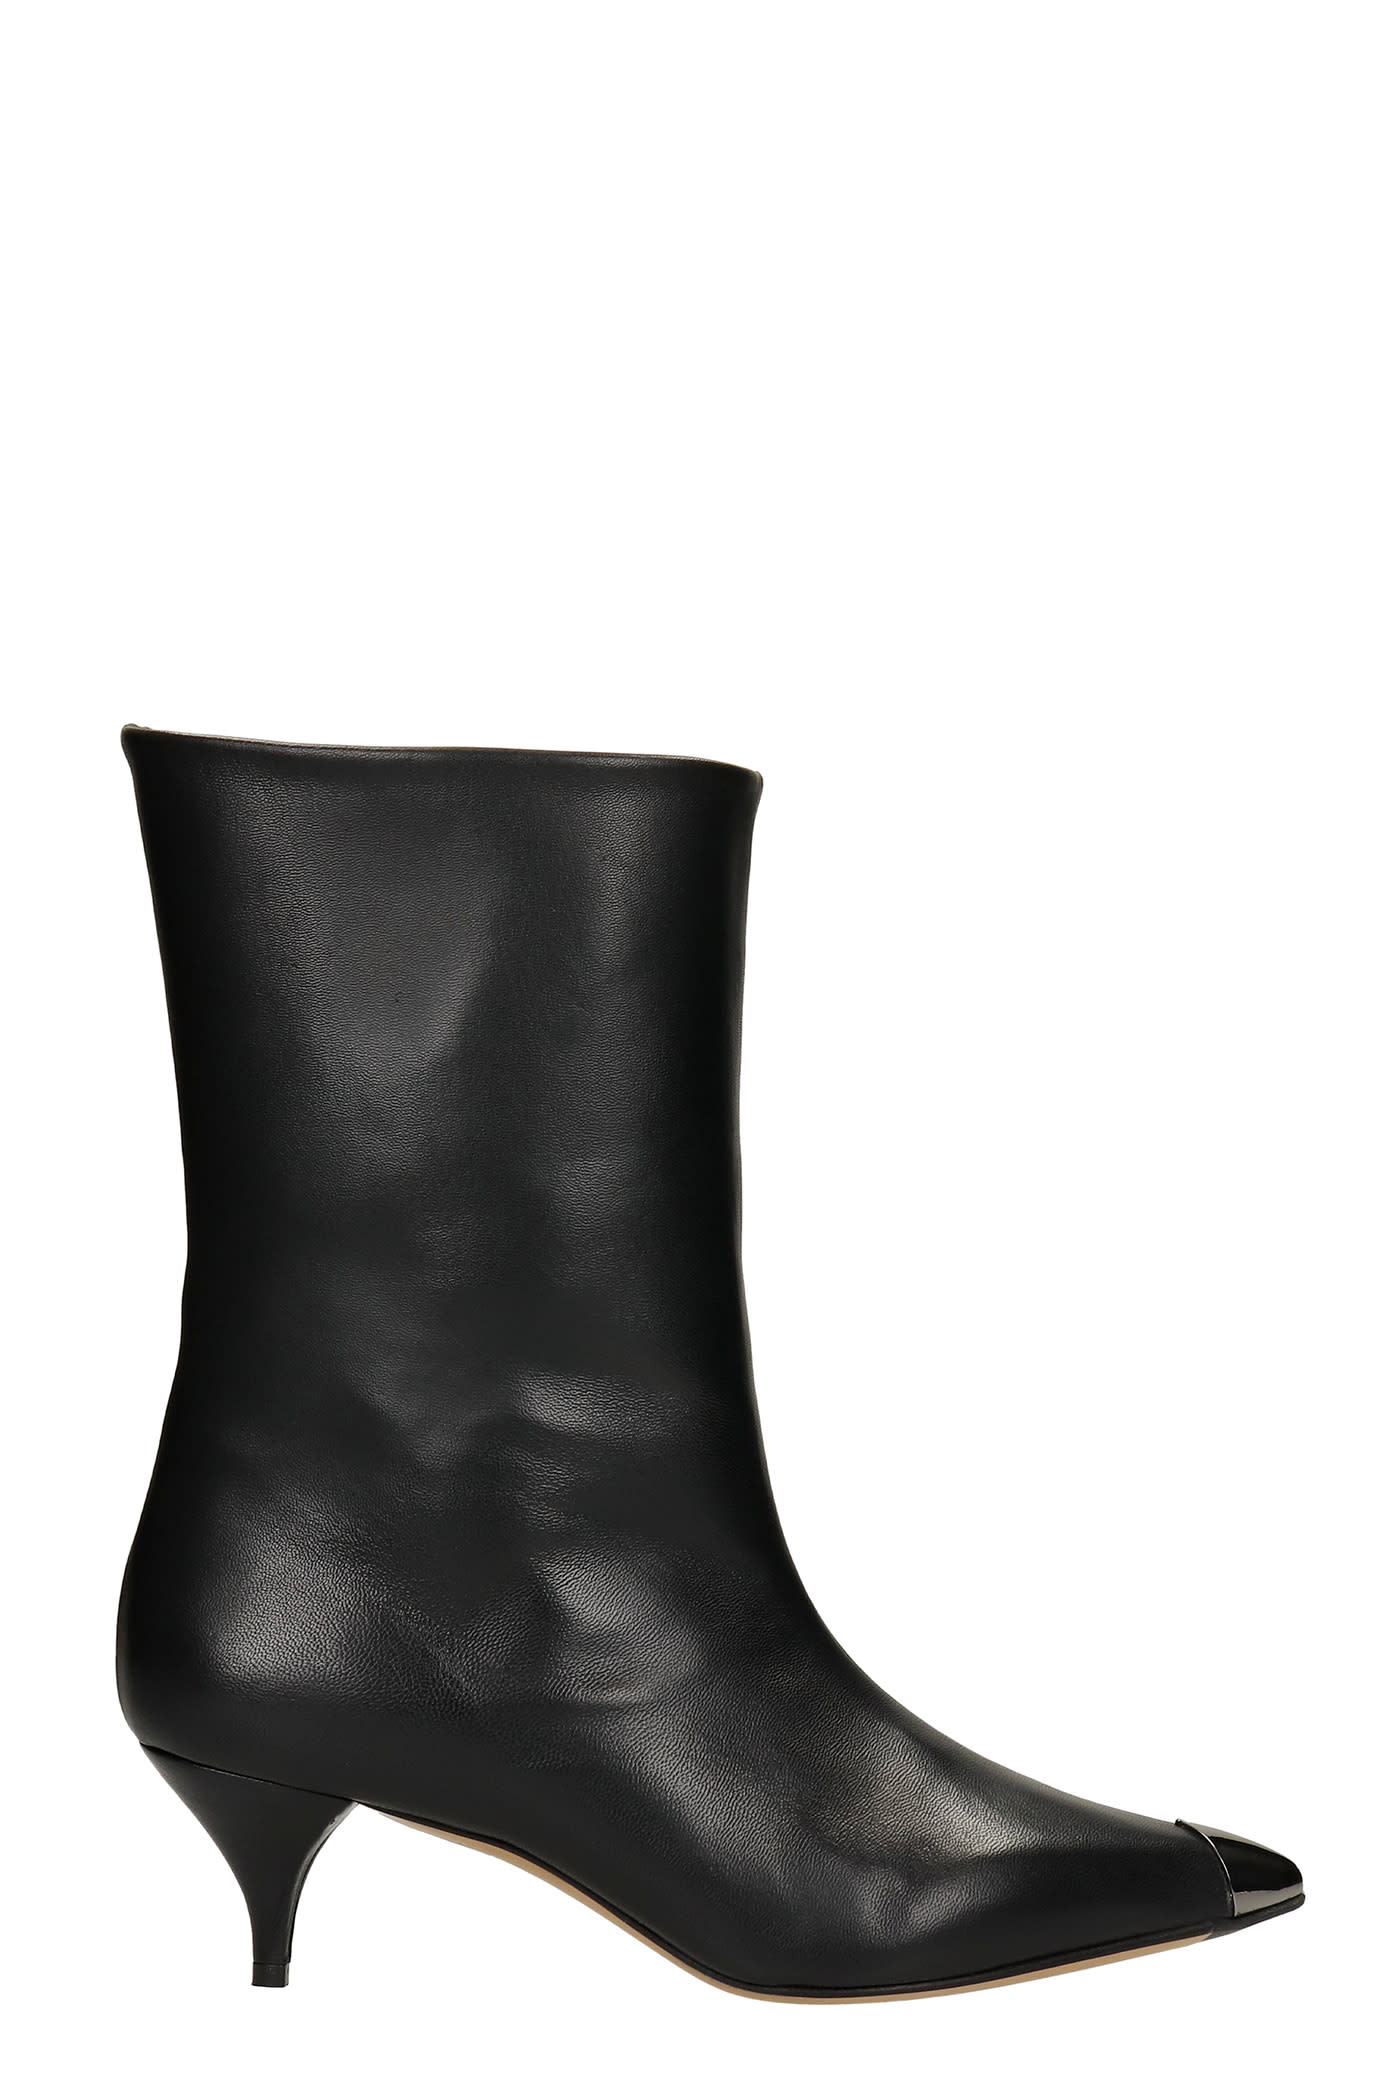 Low Heels Ankle Boots In Black Leather